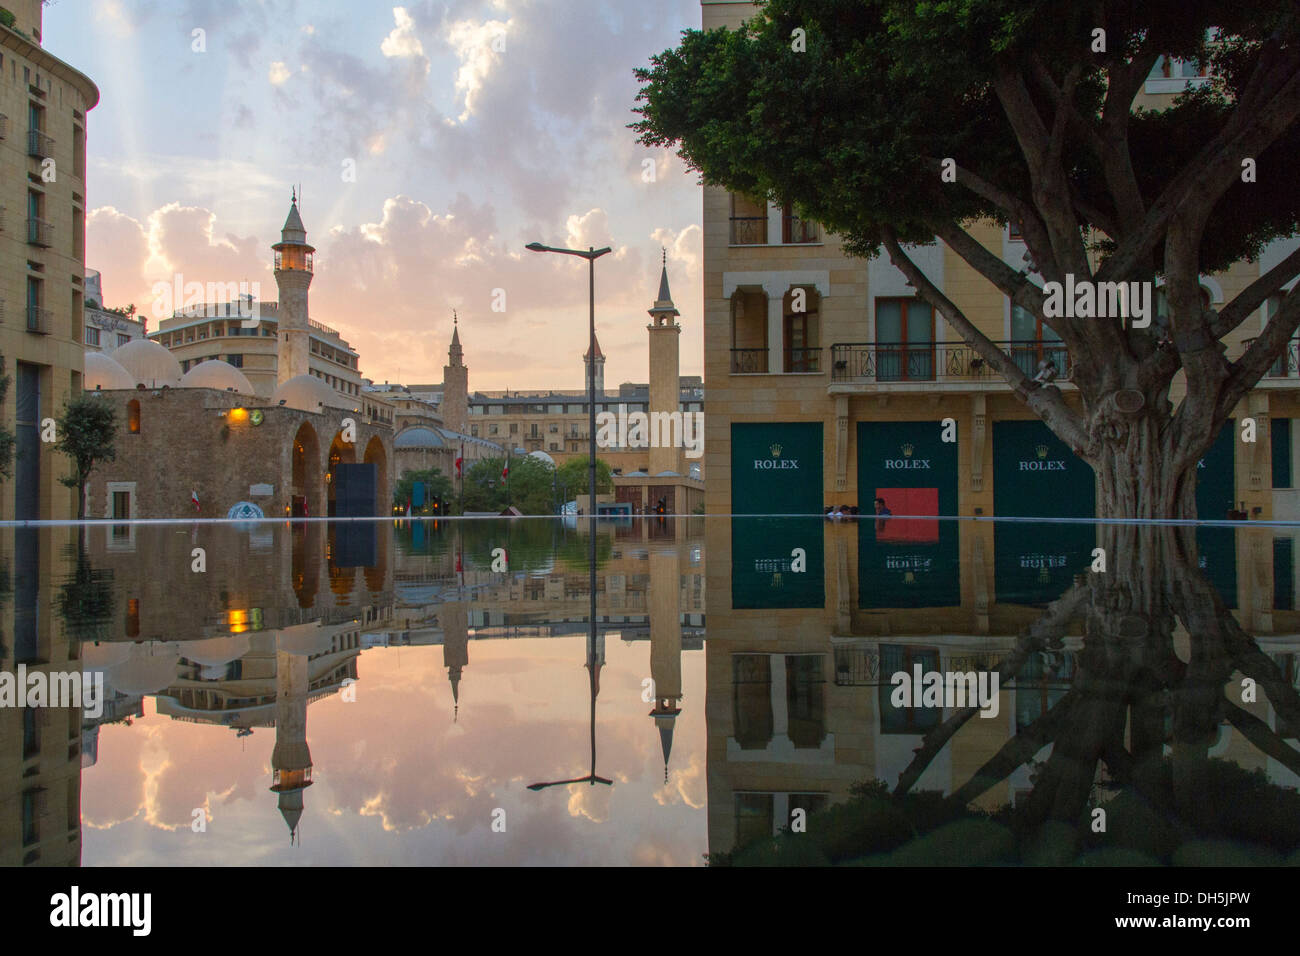 Assaf Amir mosquée dans le quartier central de Beyrouth, Beyrouth, Liban Photo Stock